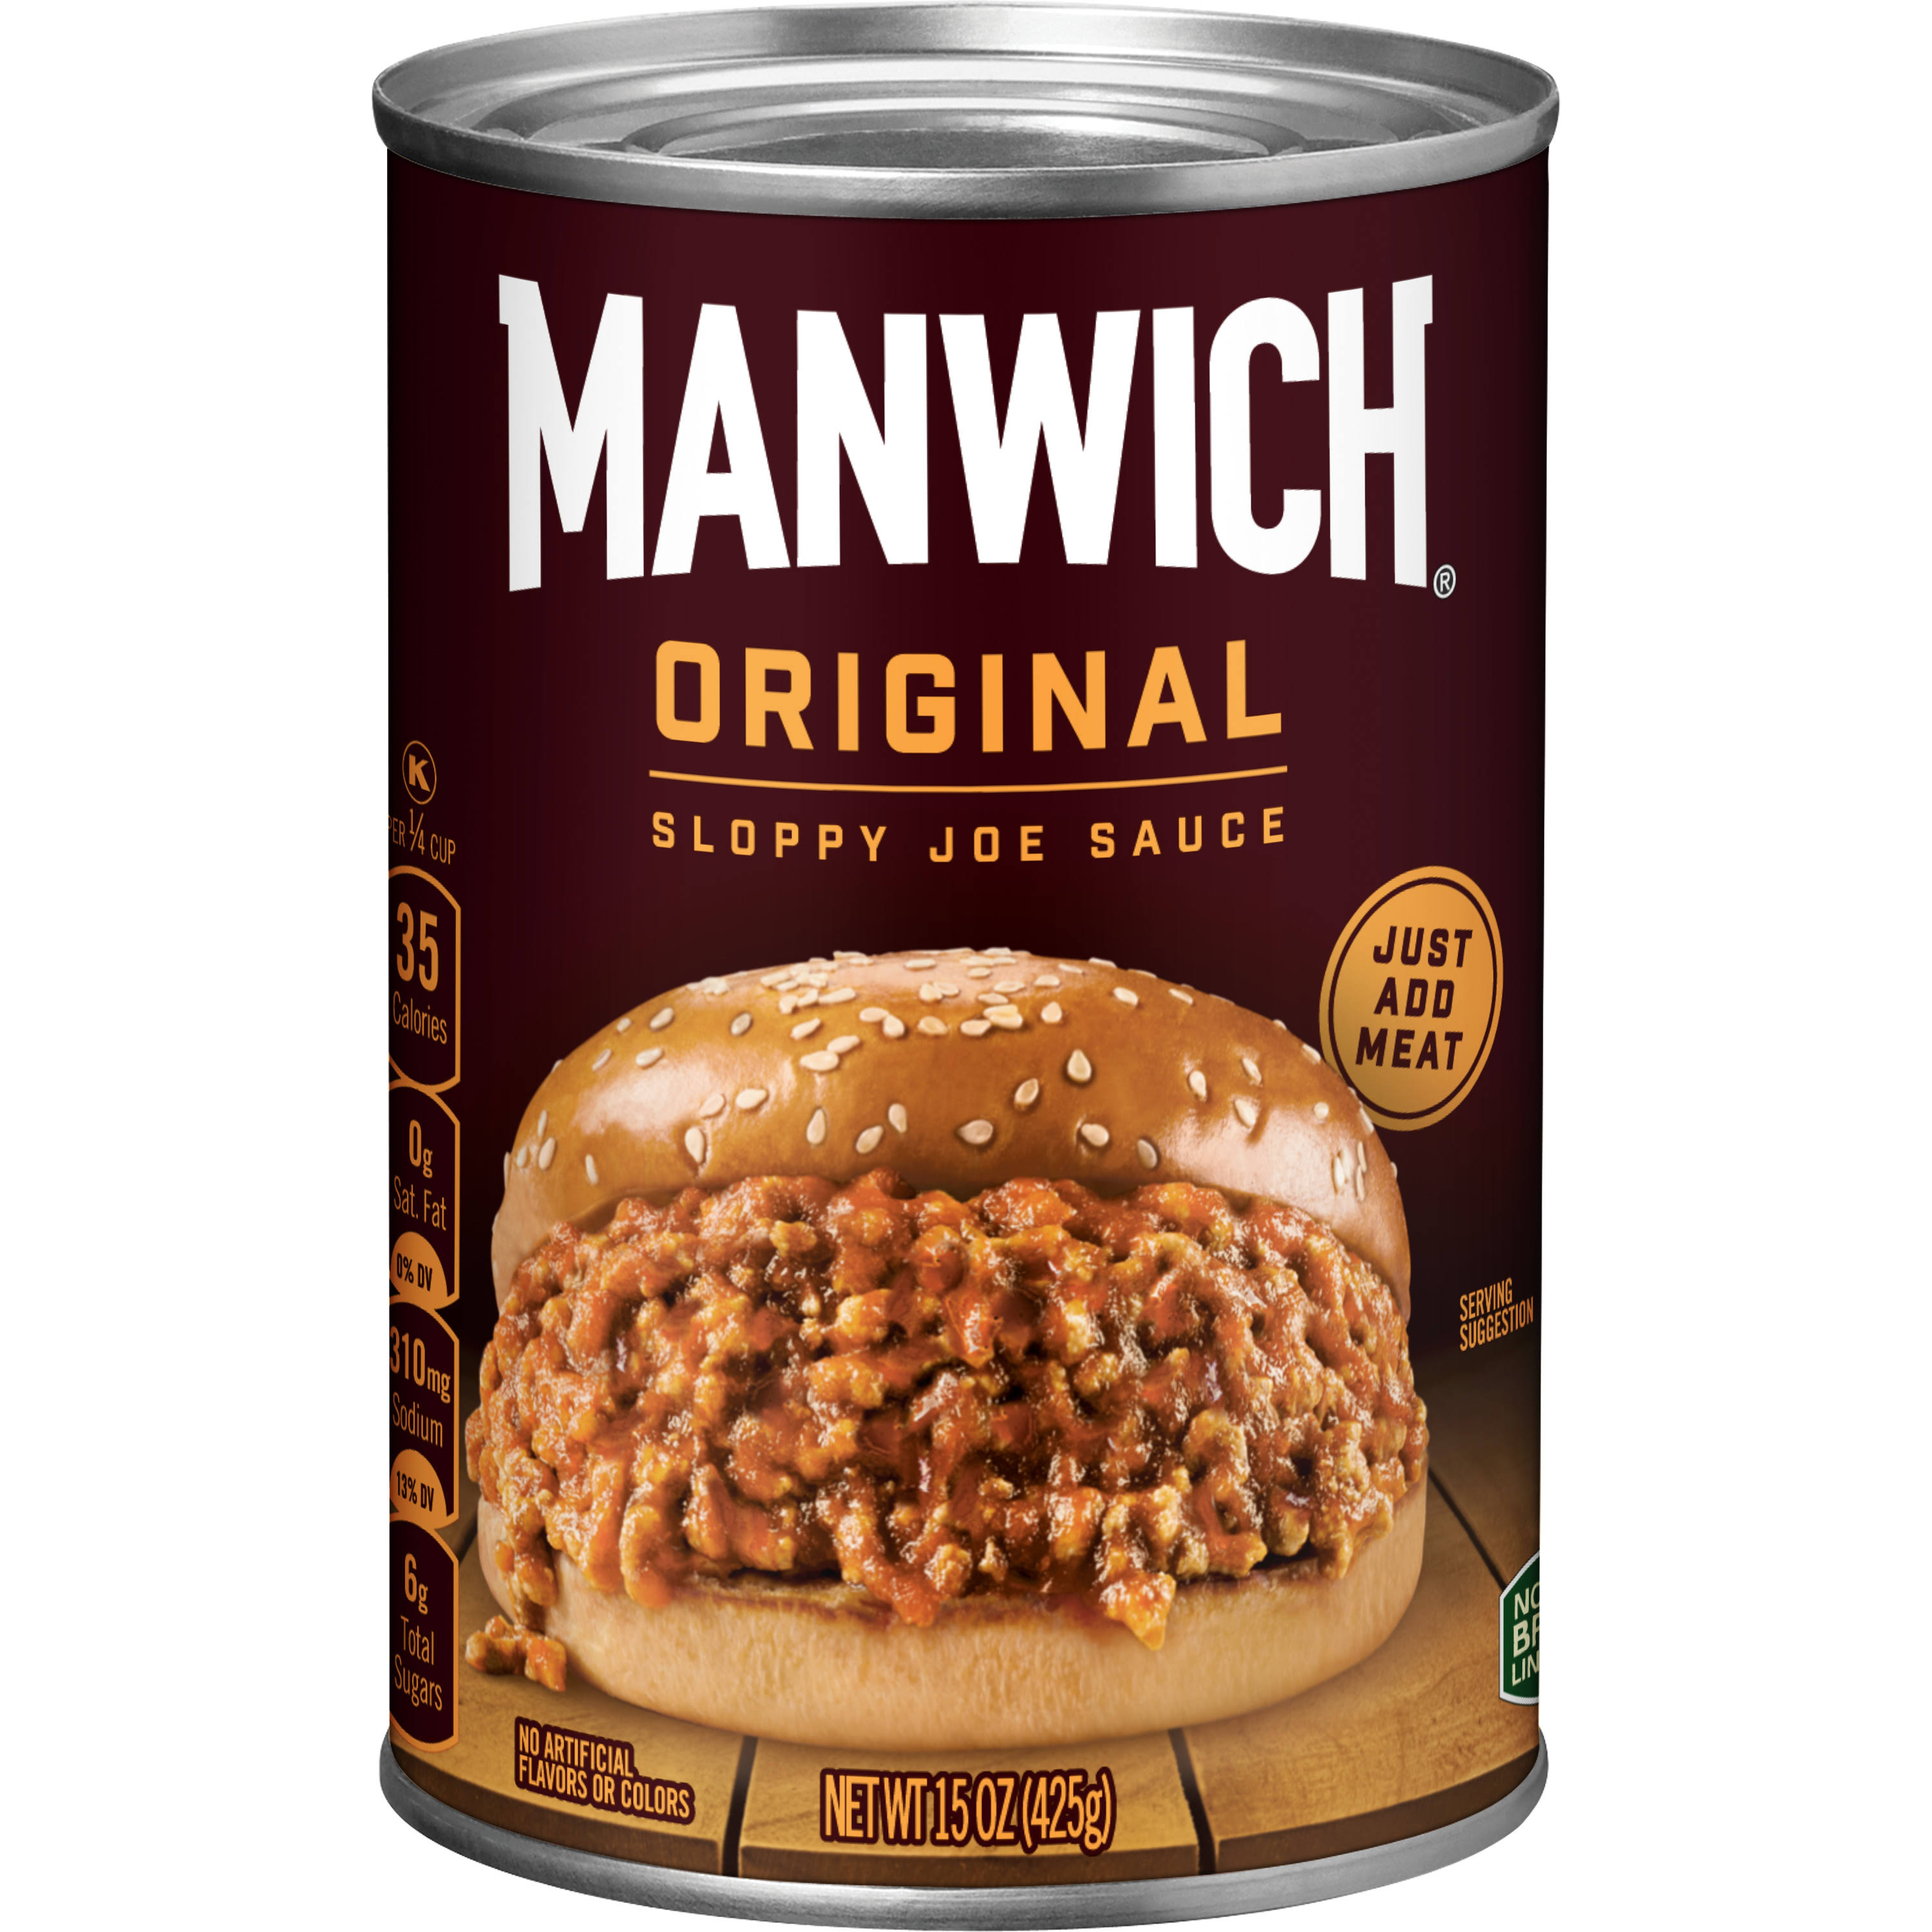 Hunt's Manwich Sloppy Joe Sauce - Original, 425g